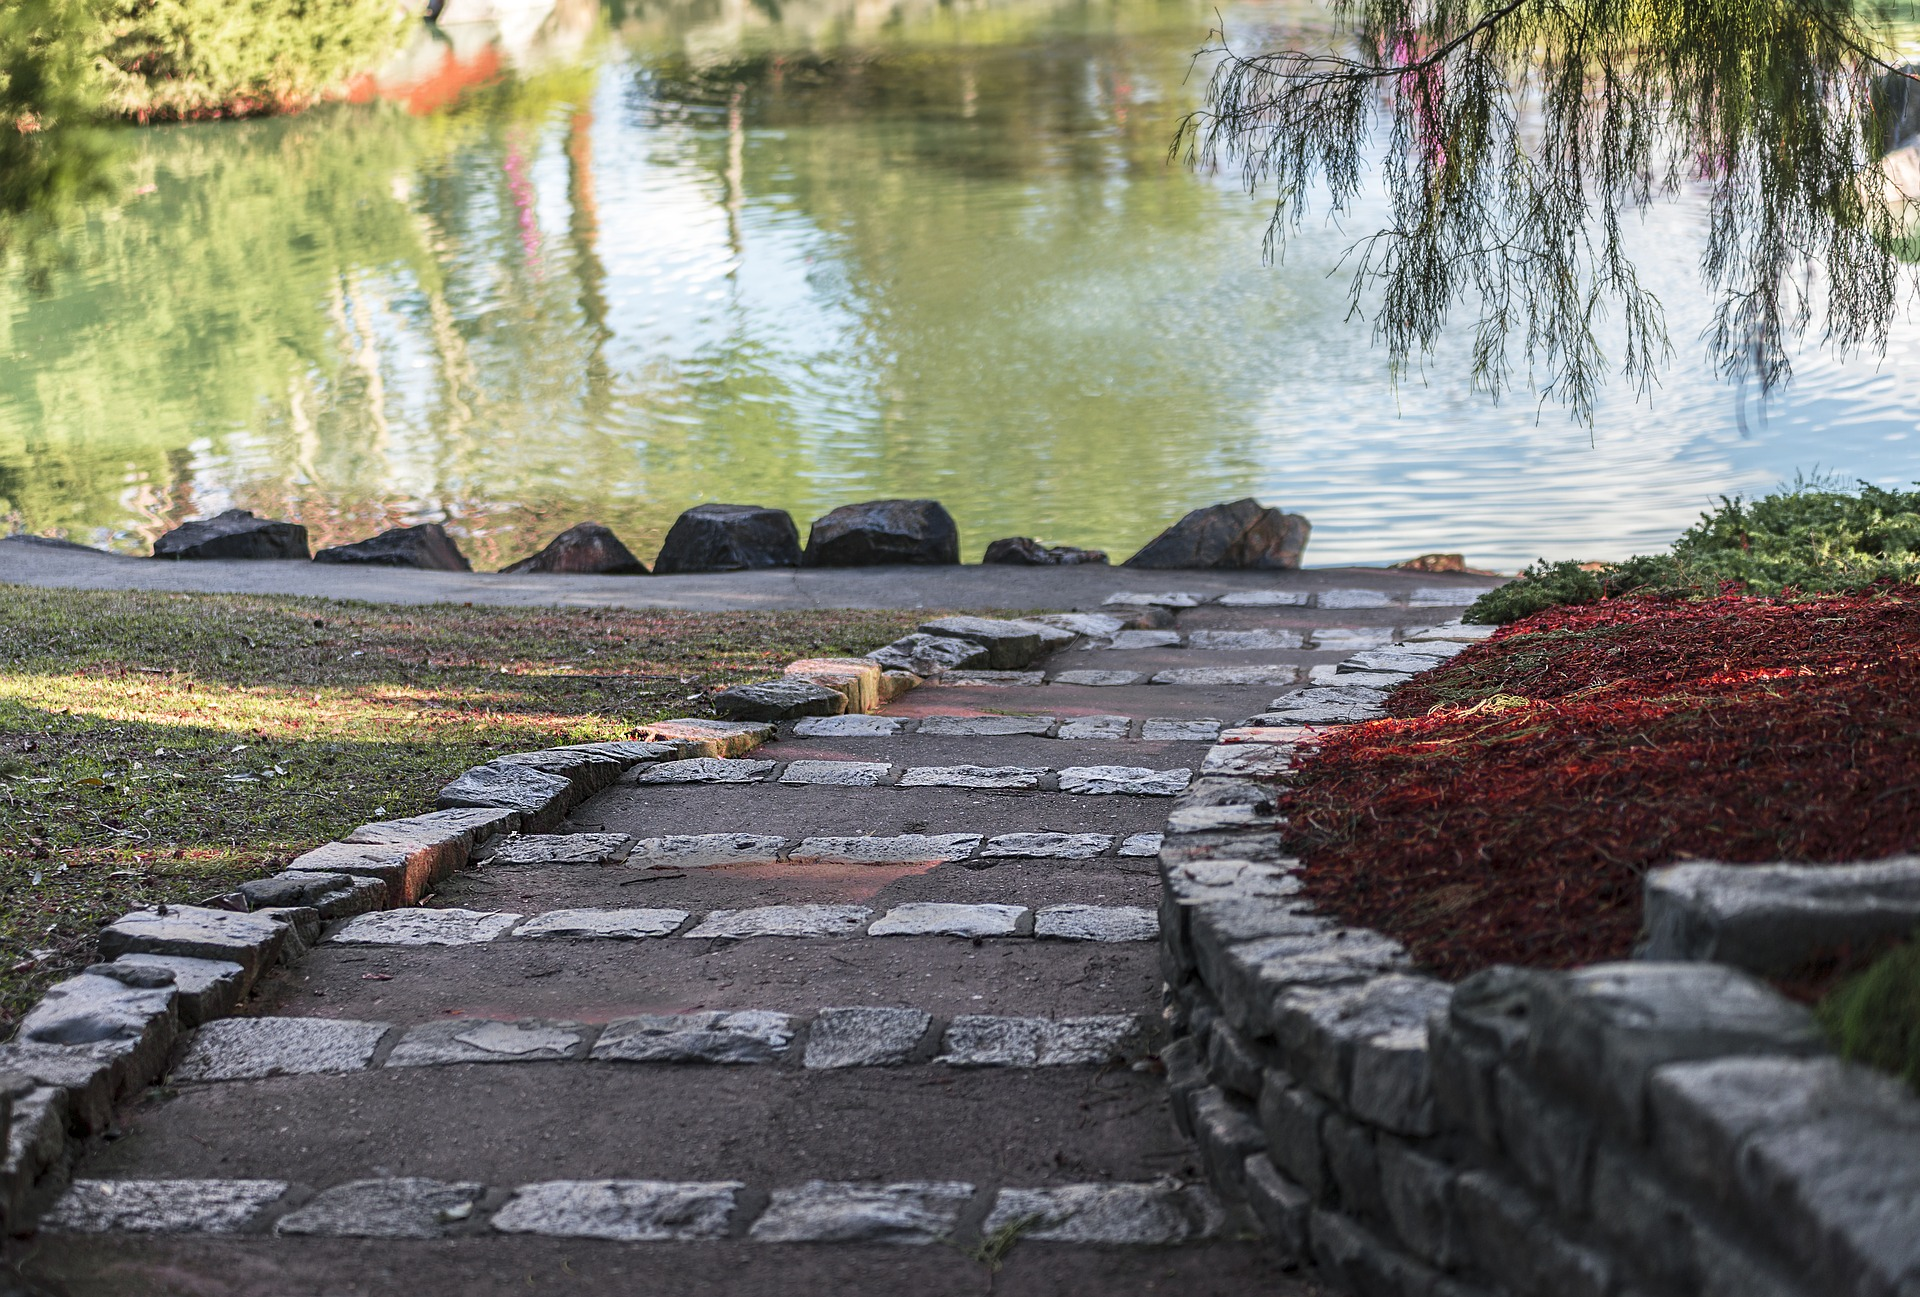 Stone paths going towards a large green pond.